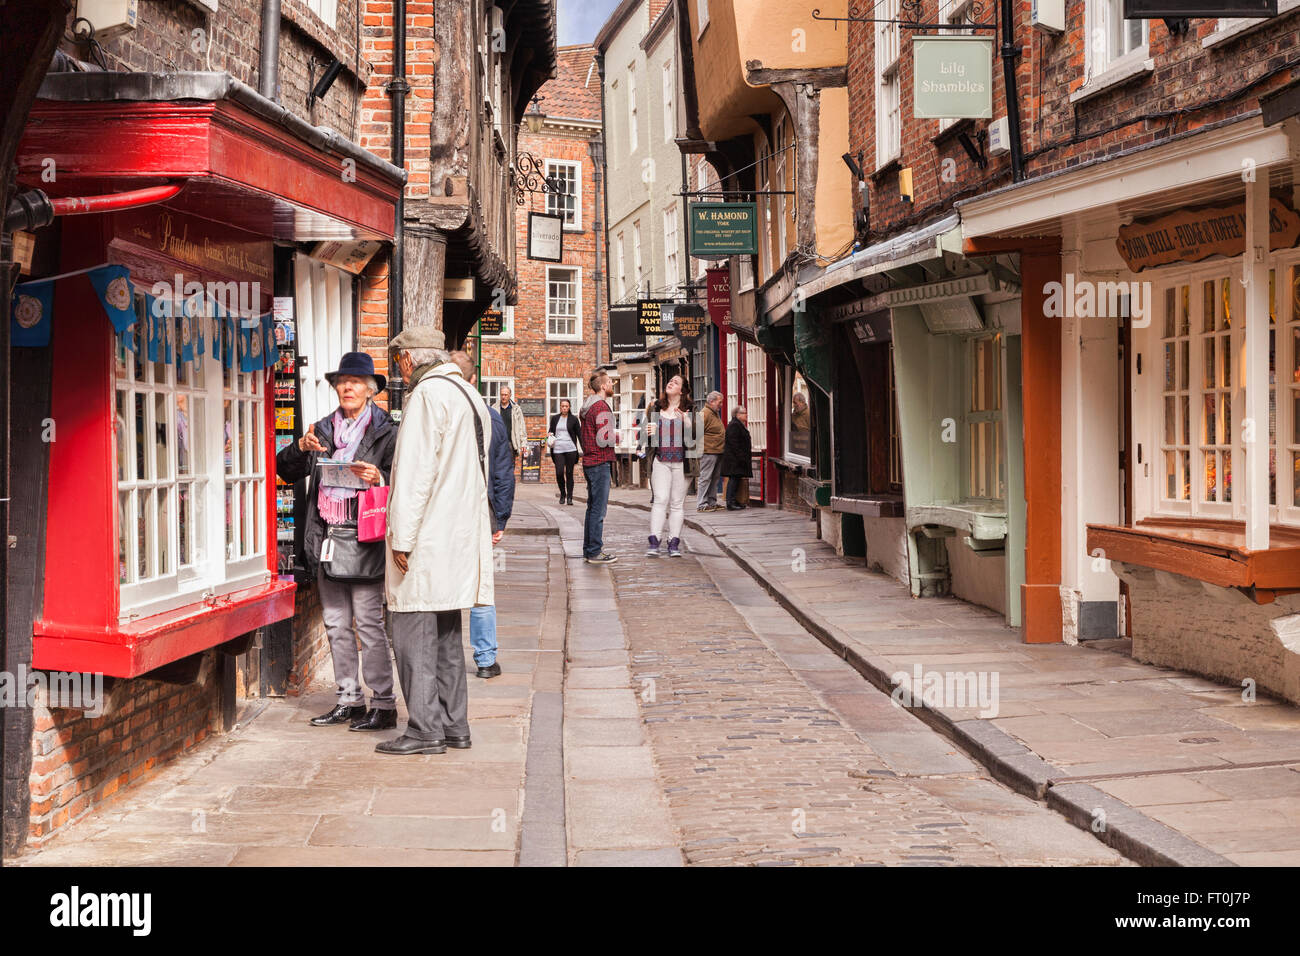 Senior couple shopping in The Shambles, York, North Yorkshire, England, UK   Slight motion blur on woman's face - Stock Image